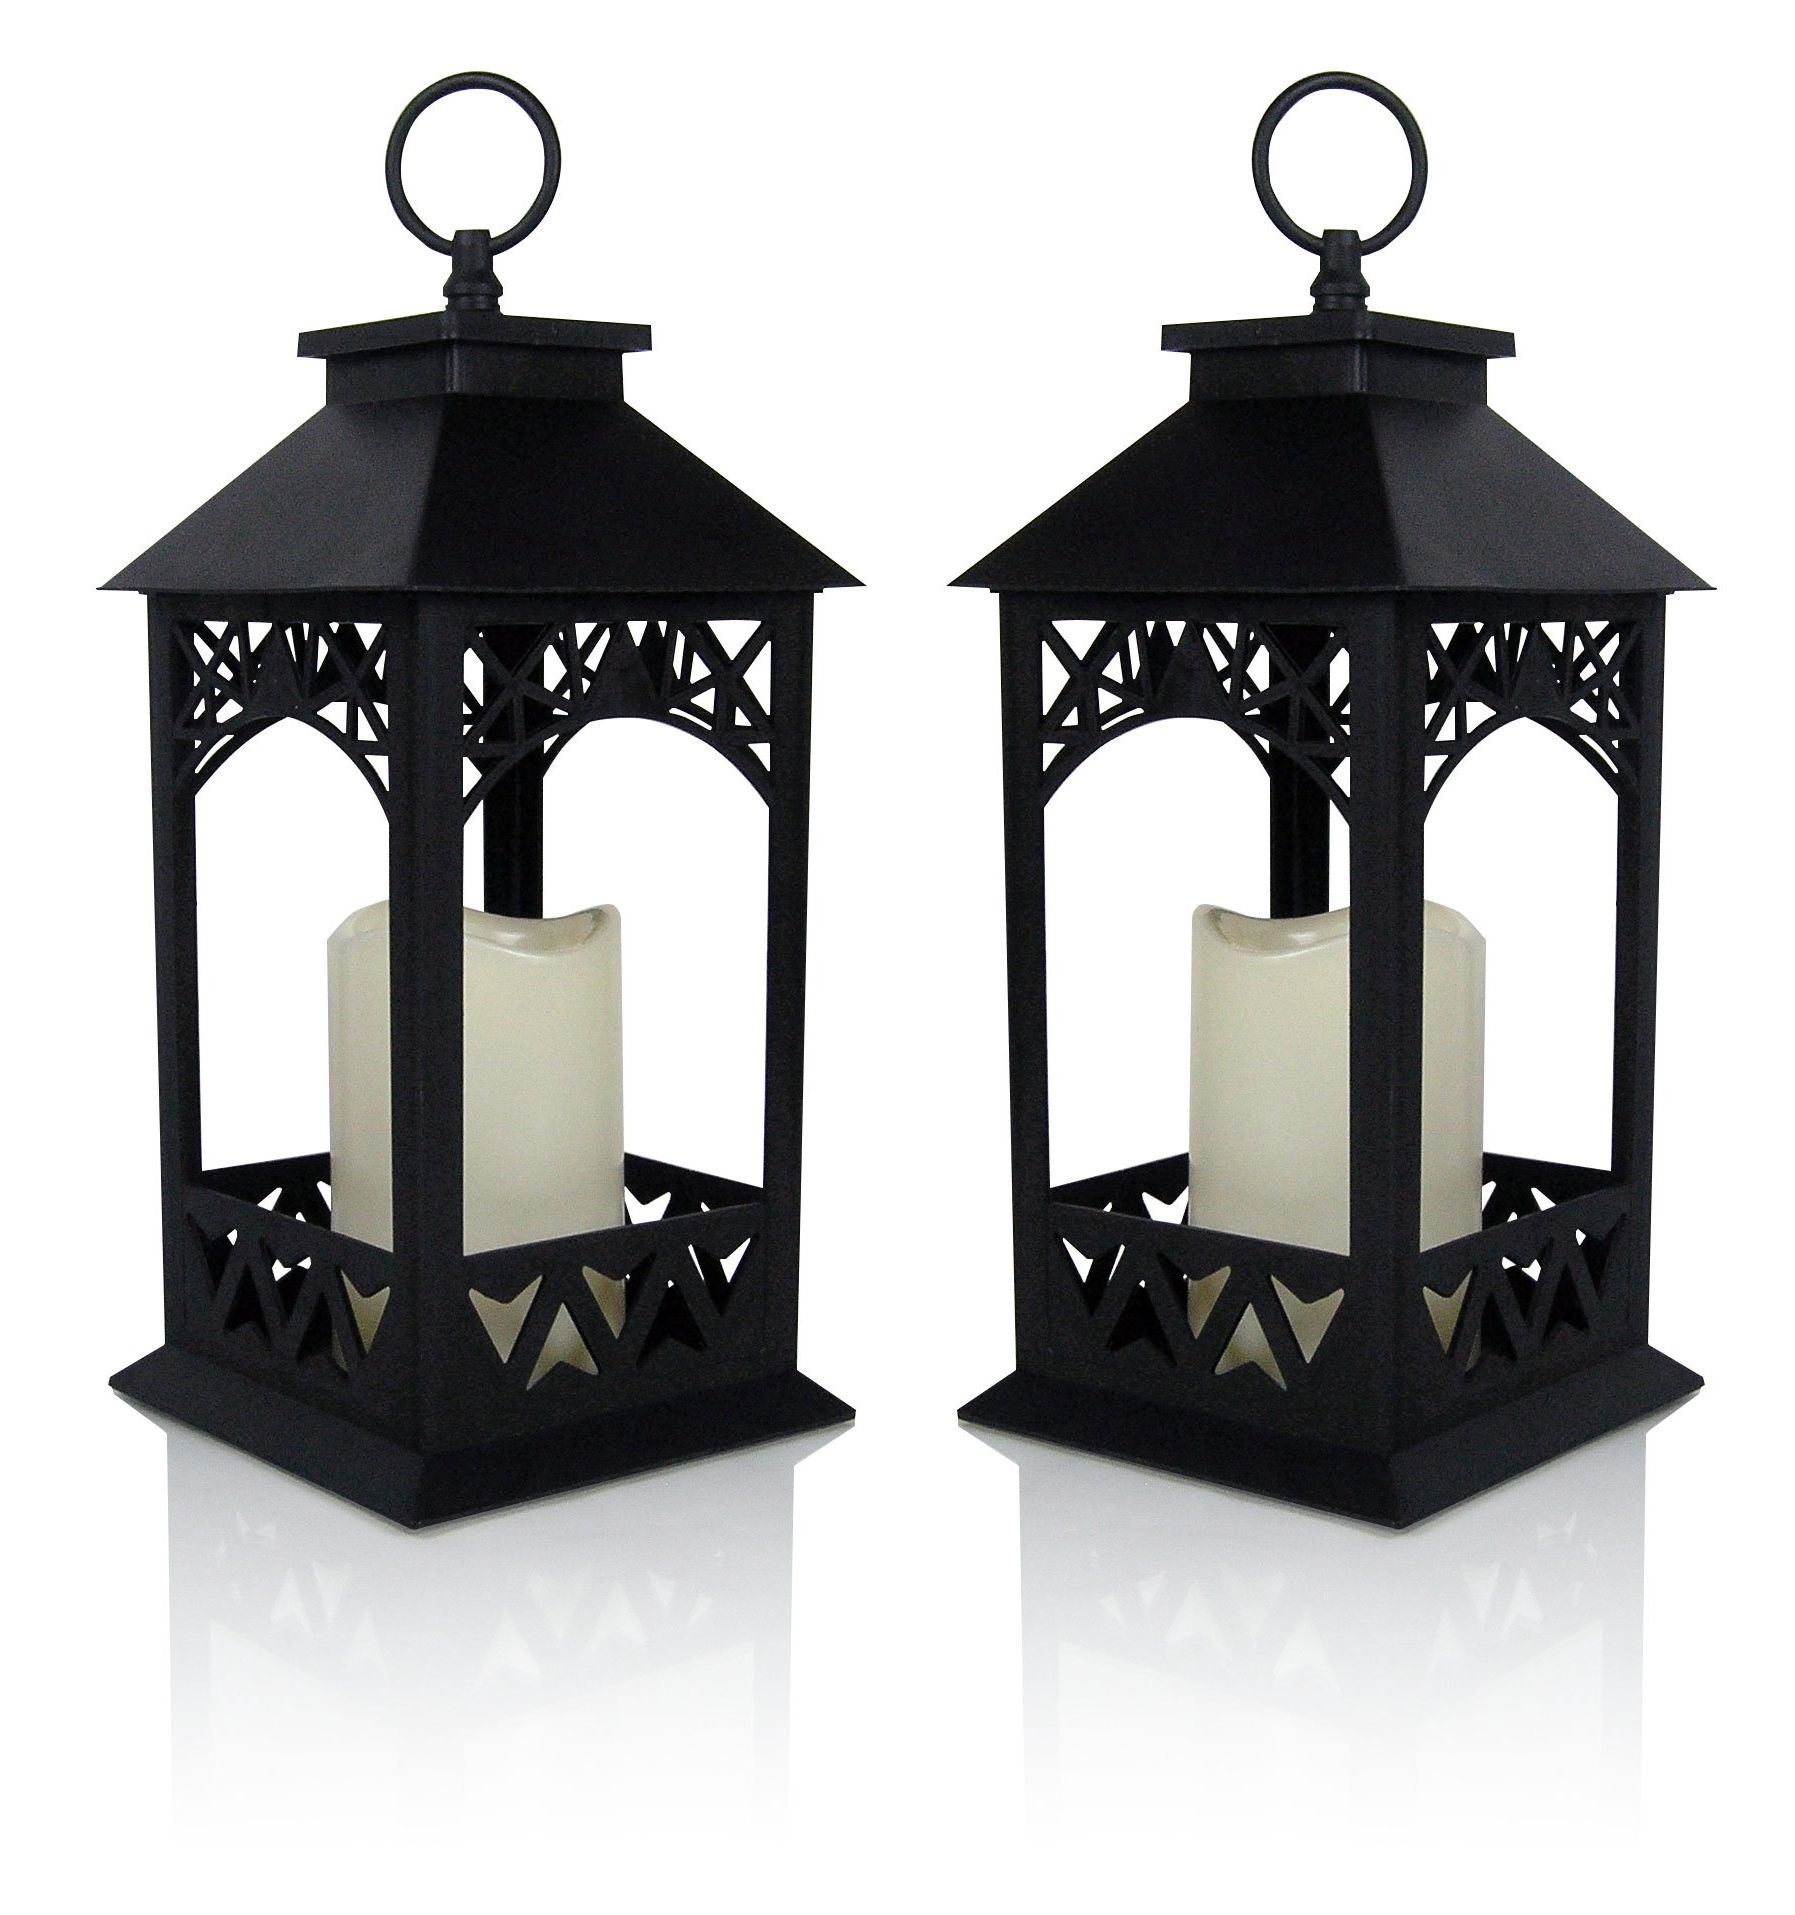 Cheap Outdoor Lanterns Candle, Find Outdoor Lanterns Candle Deals On Within Well Known Outdoor Lanterns With Timers (View 3 of 20)